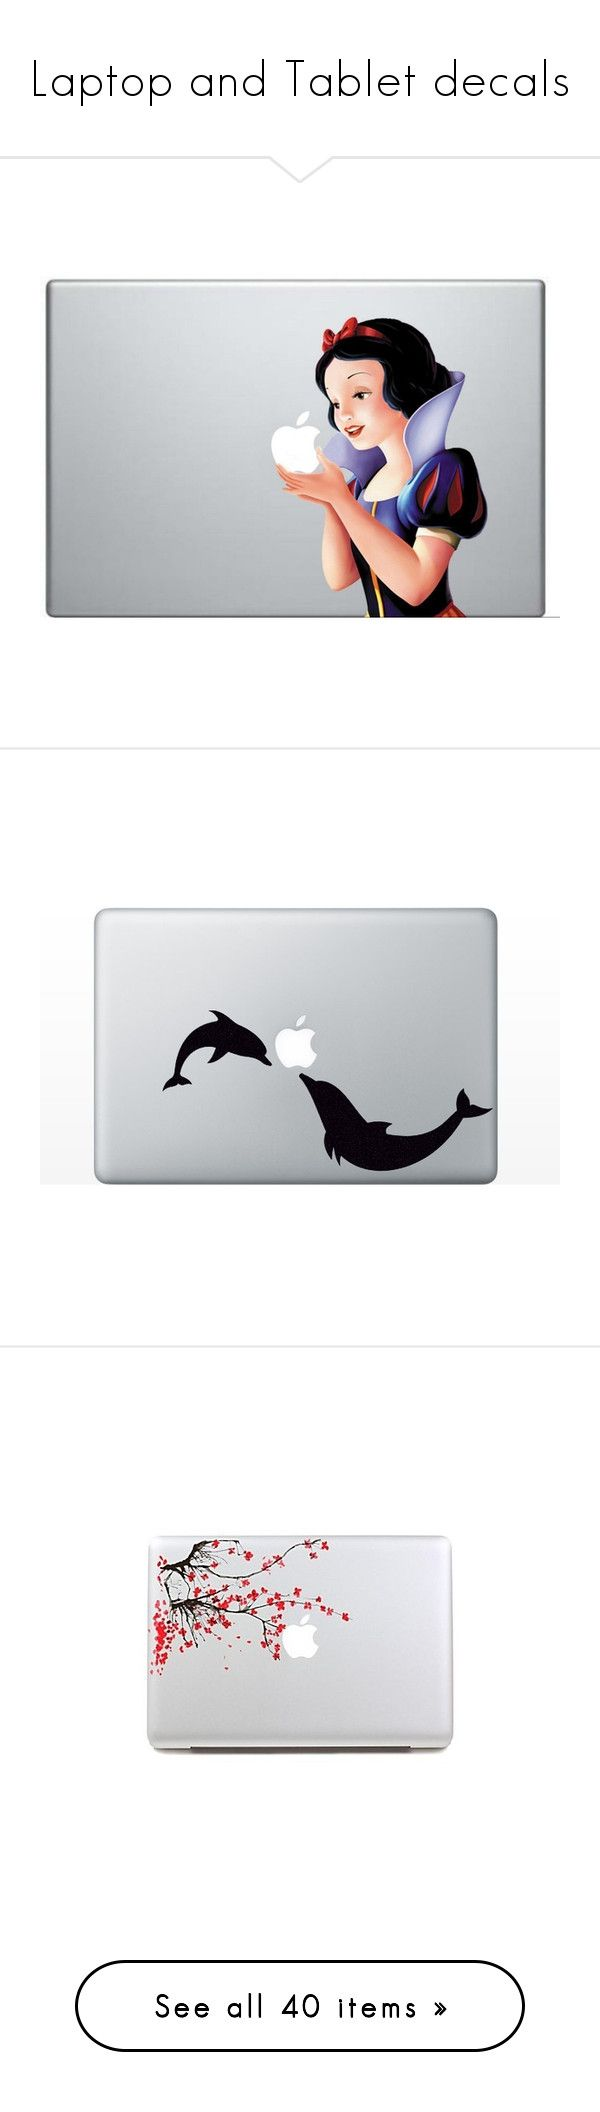 """Laptop and Tablet decals"" by directioner-123-ii ❤ liked on Polyvore featuring home, home decor, office accessories, laptops, wall art, movie wall art, dolphin wall art, window decals, window wall art and comic book wall art"